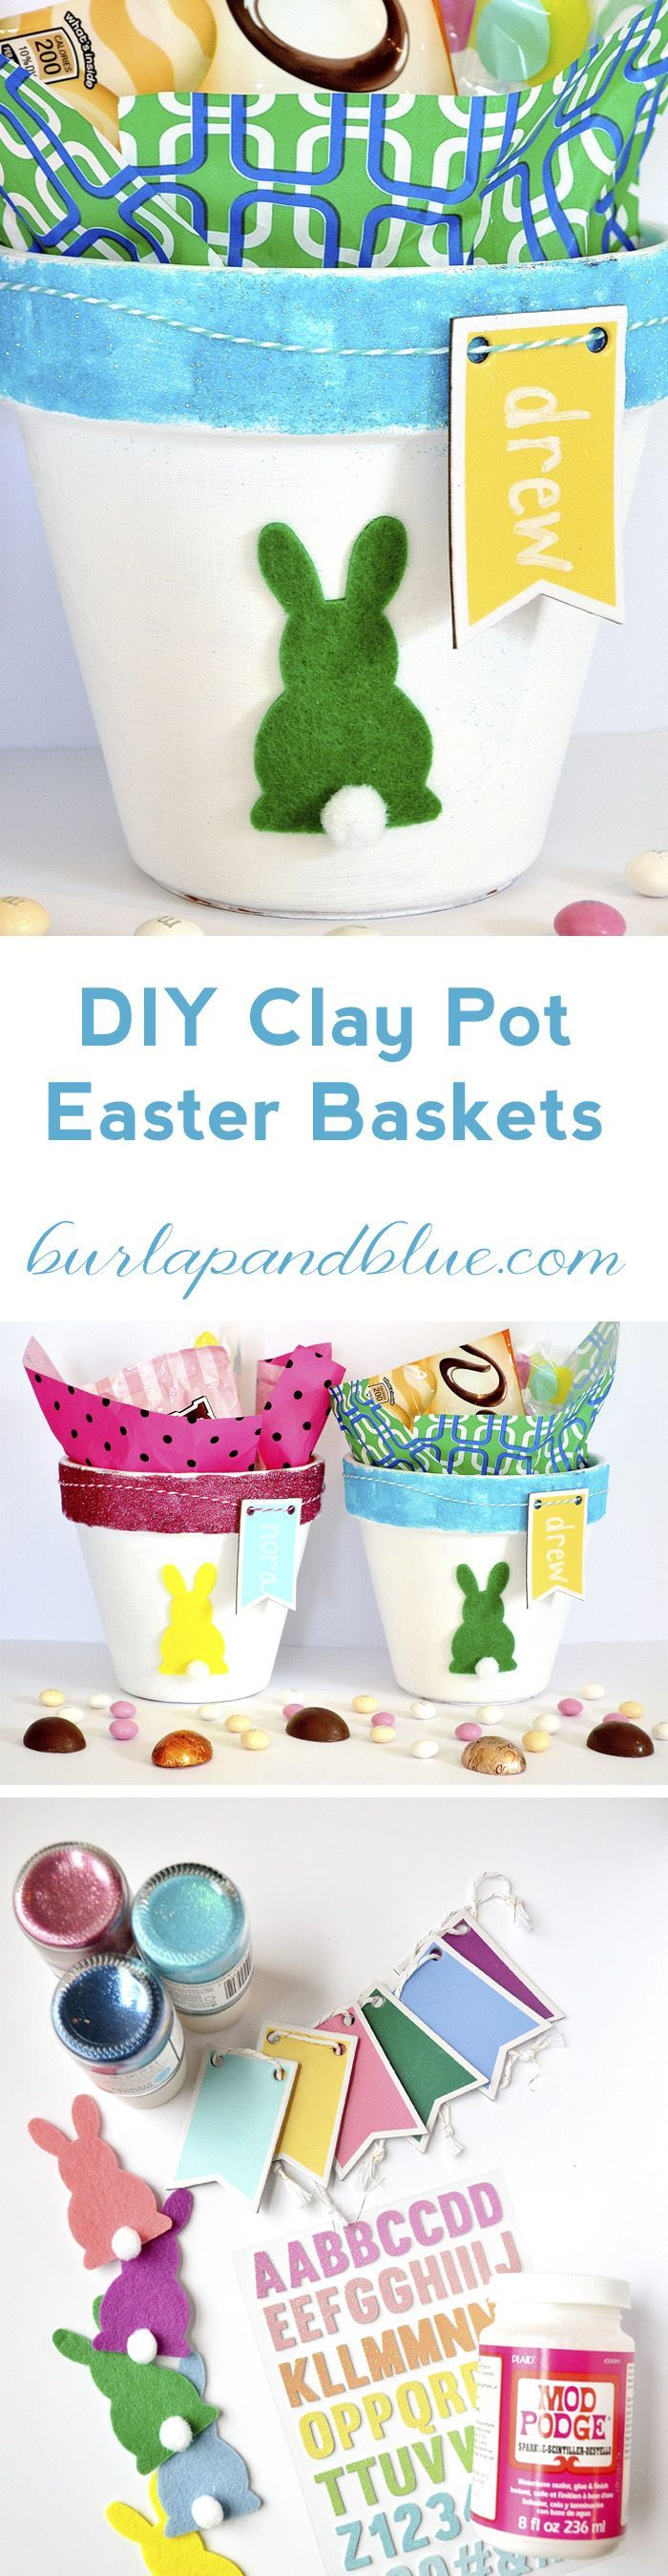 DIY clay pot easter baskets using glitter, mod podge, and embellishements!